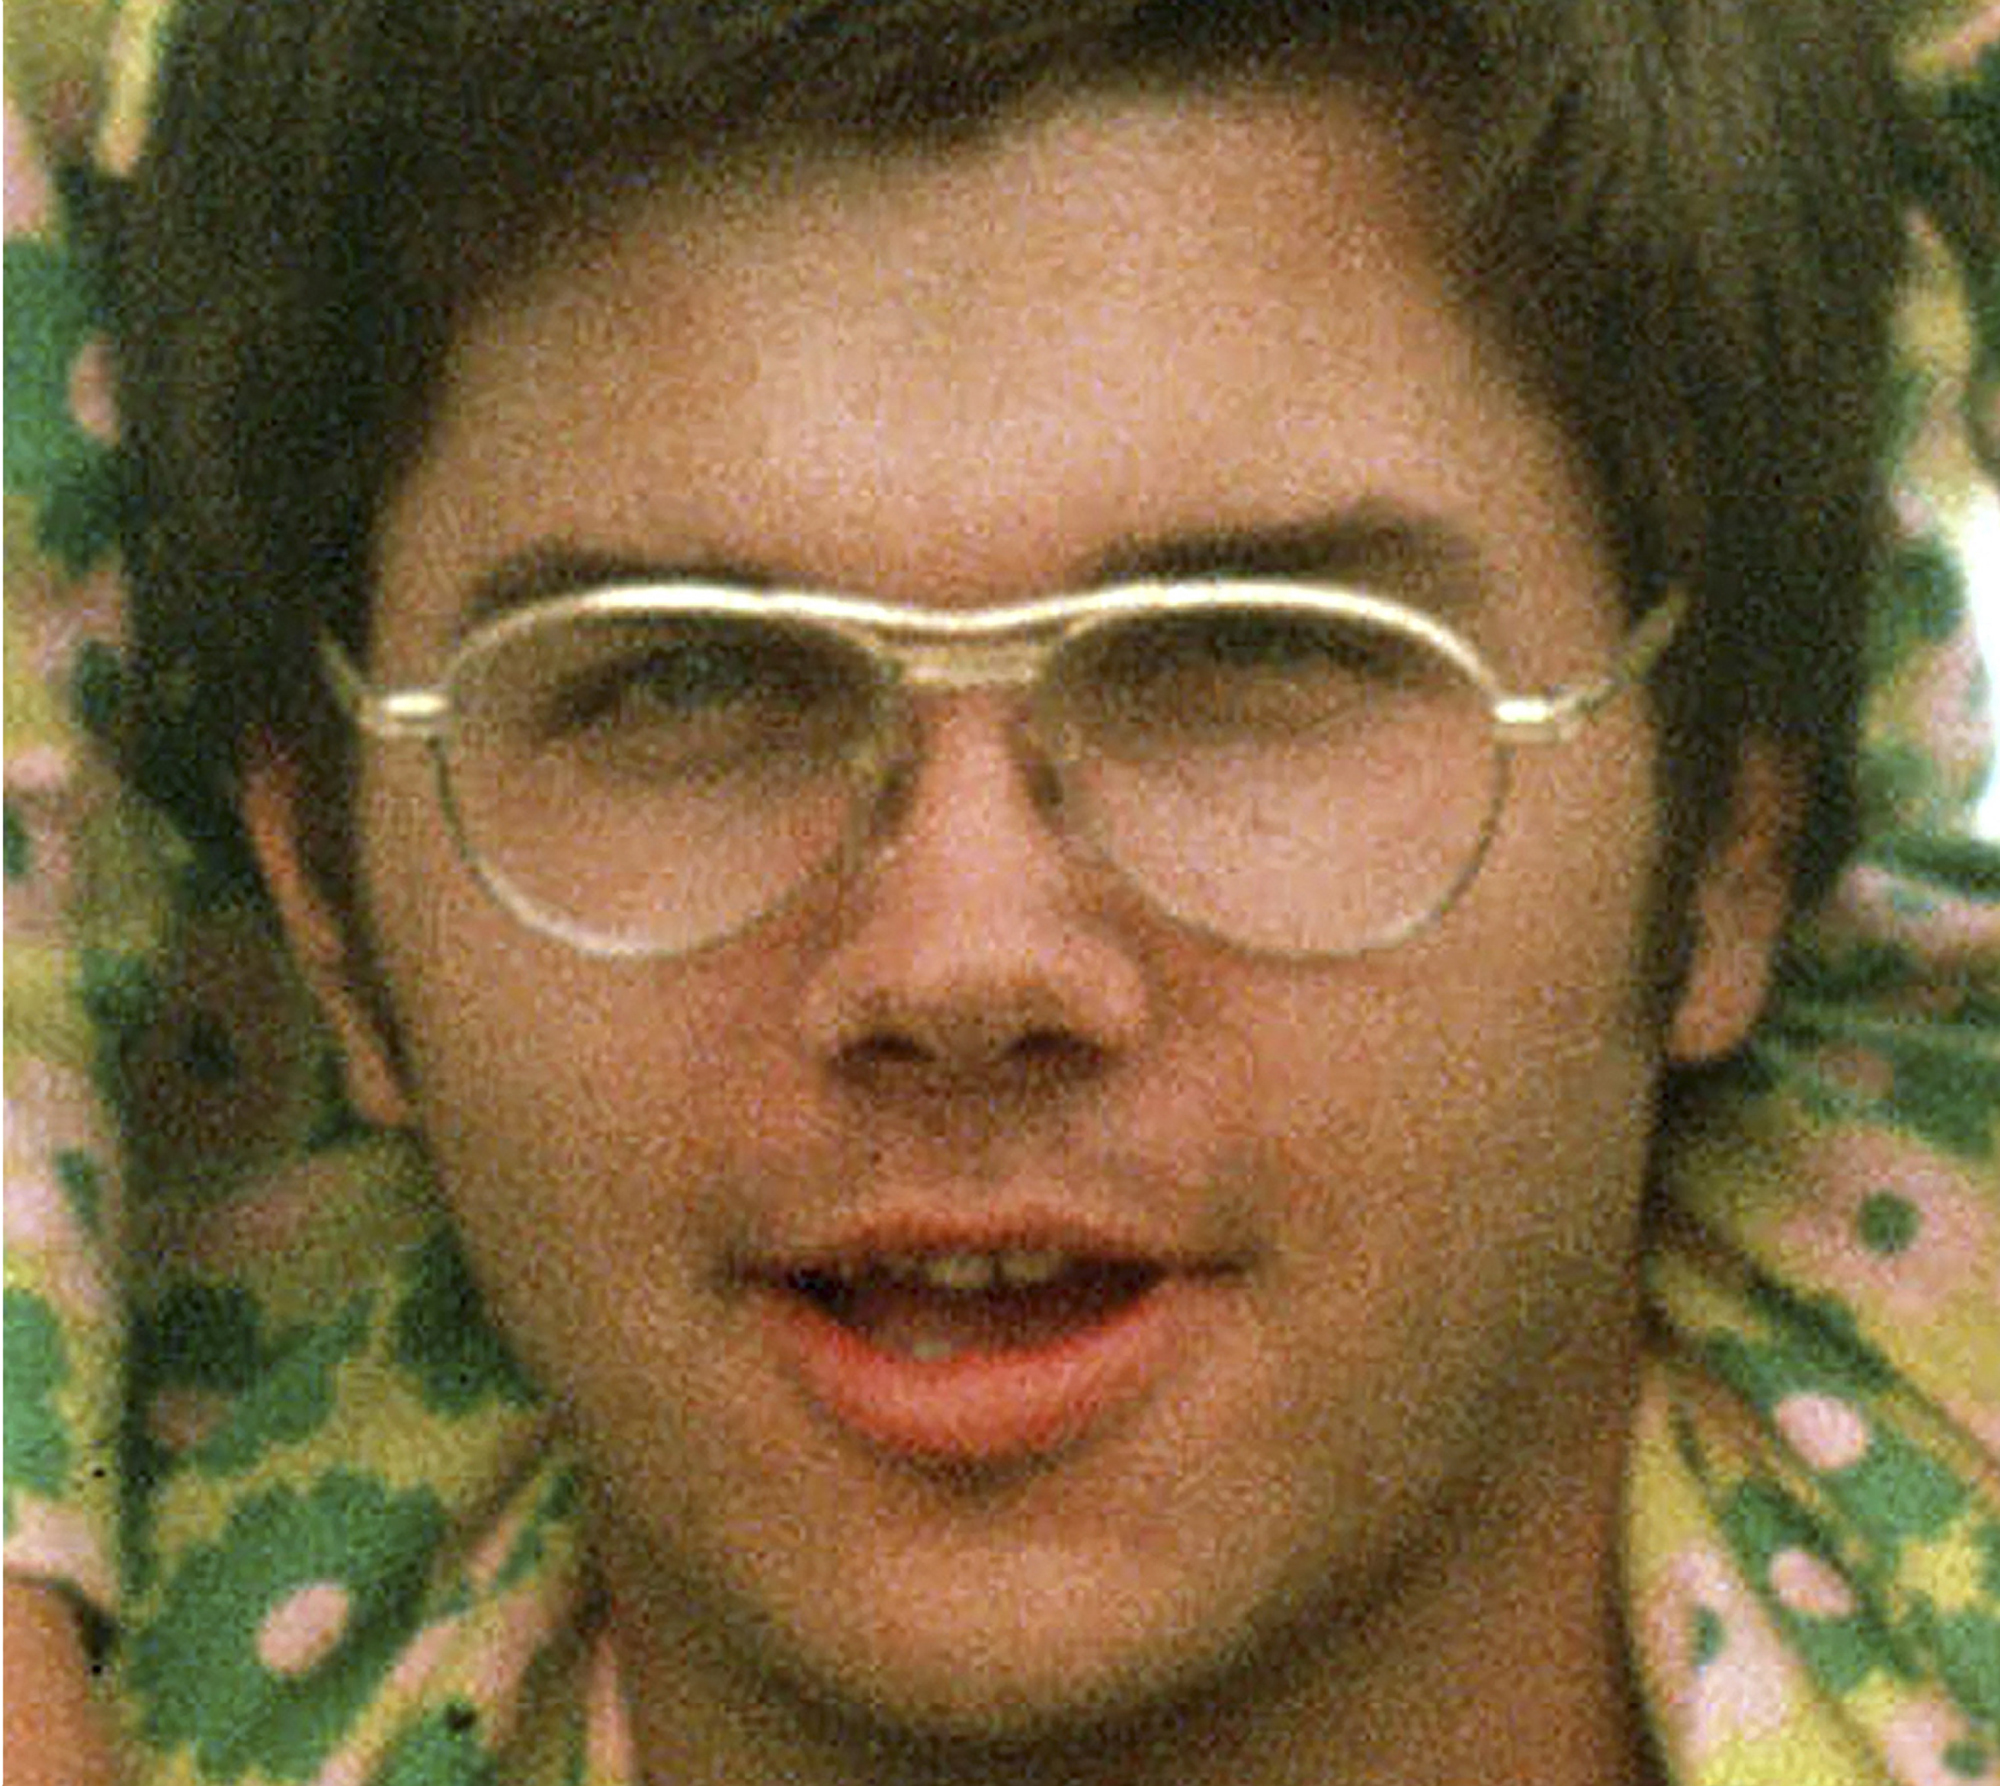 In this 1975 file photo, Mark David Chapman is seen at Fort Chaffee near Fort Smith, Ark. The New York state Board of Parole on Monday,  Aug. 29, 2016, announced that it has again denied parole to Chapman, who on Dec. 8, 1980, shot and killed John Lennon